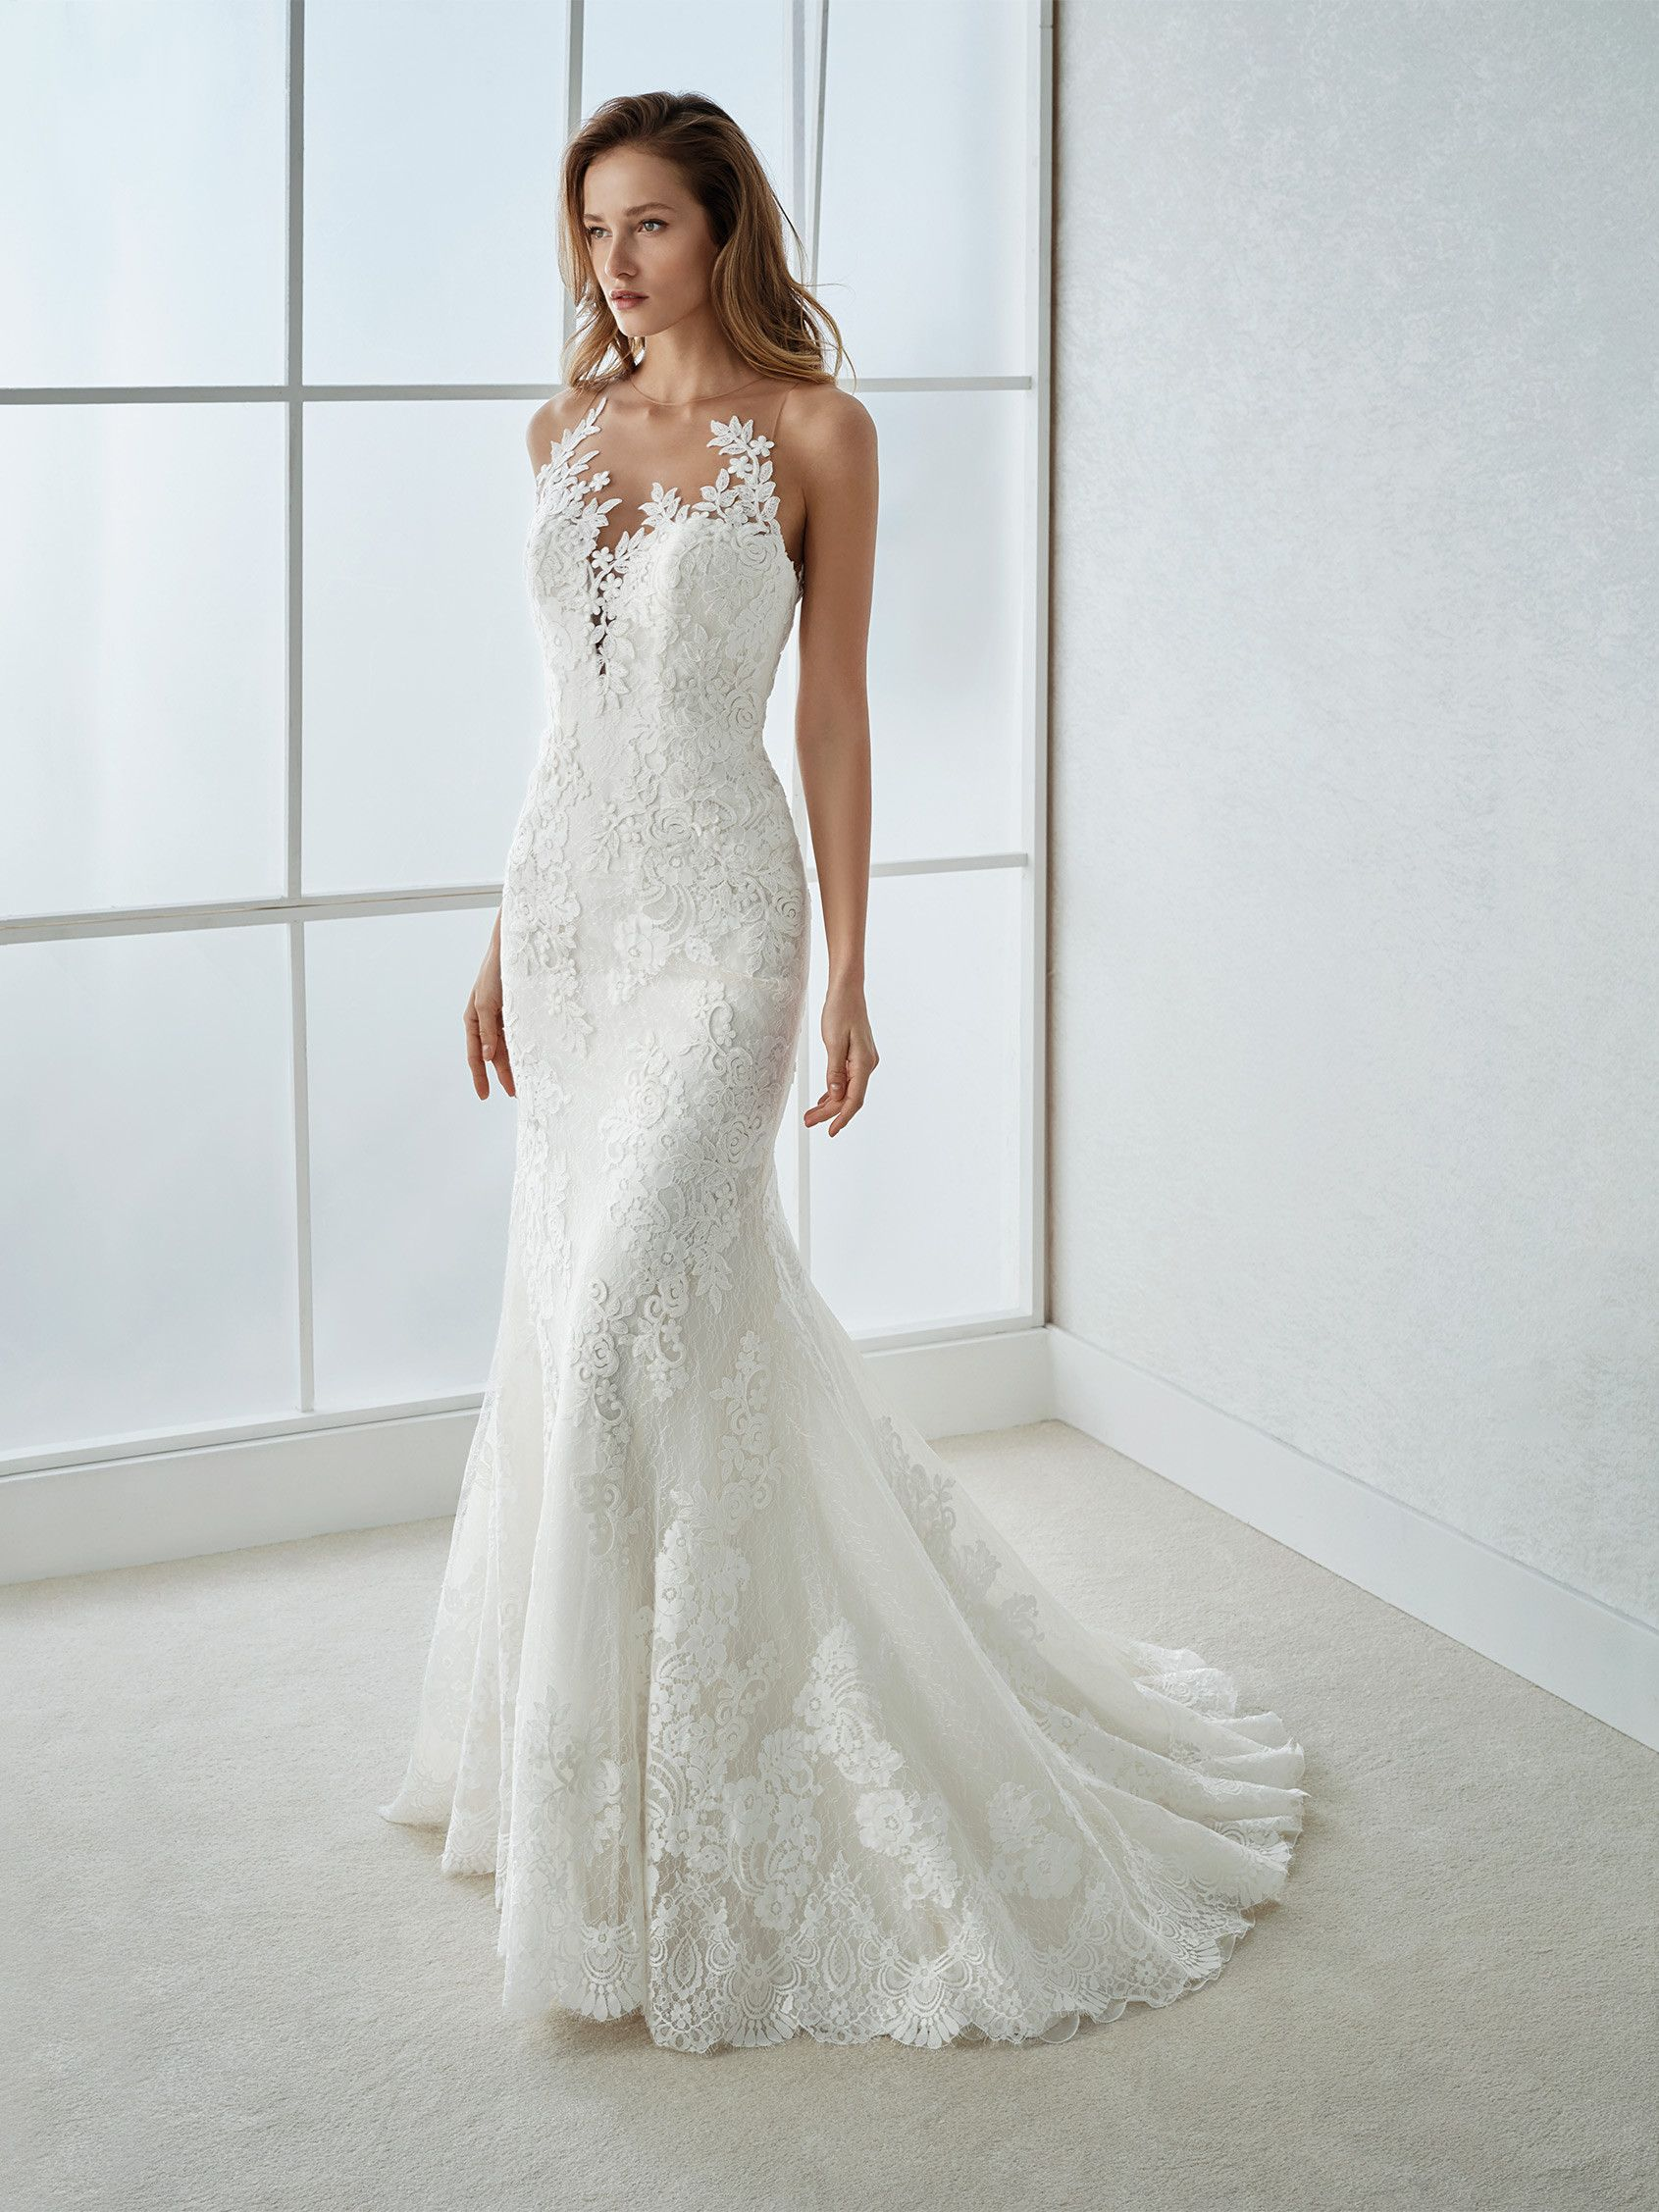 White One collection 2018 Style FAITH Mermaid gown in Tulle and lace. An  original low waist design with an illusion neckline that plays with the  almost ... 7db434ceab